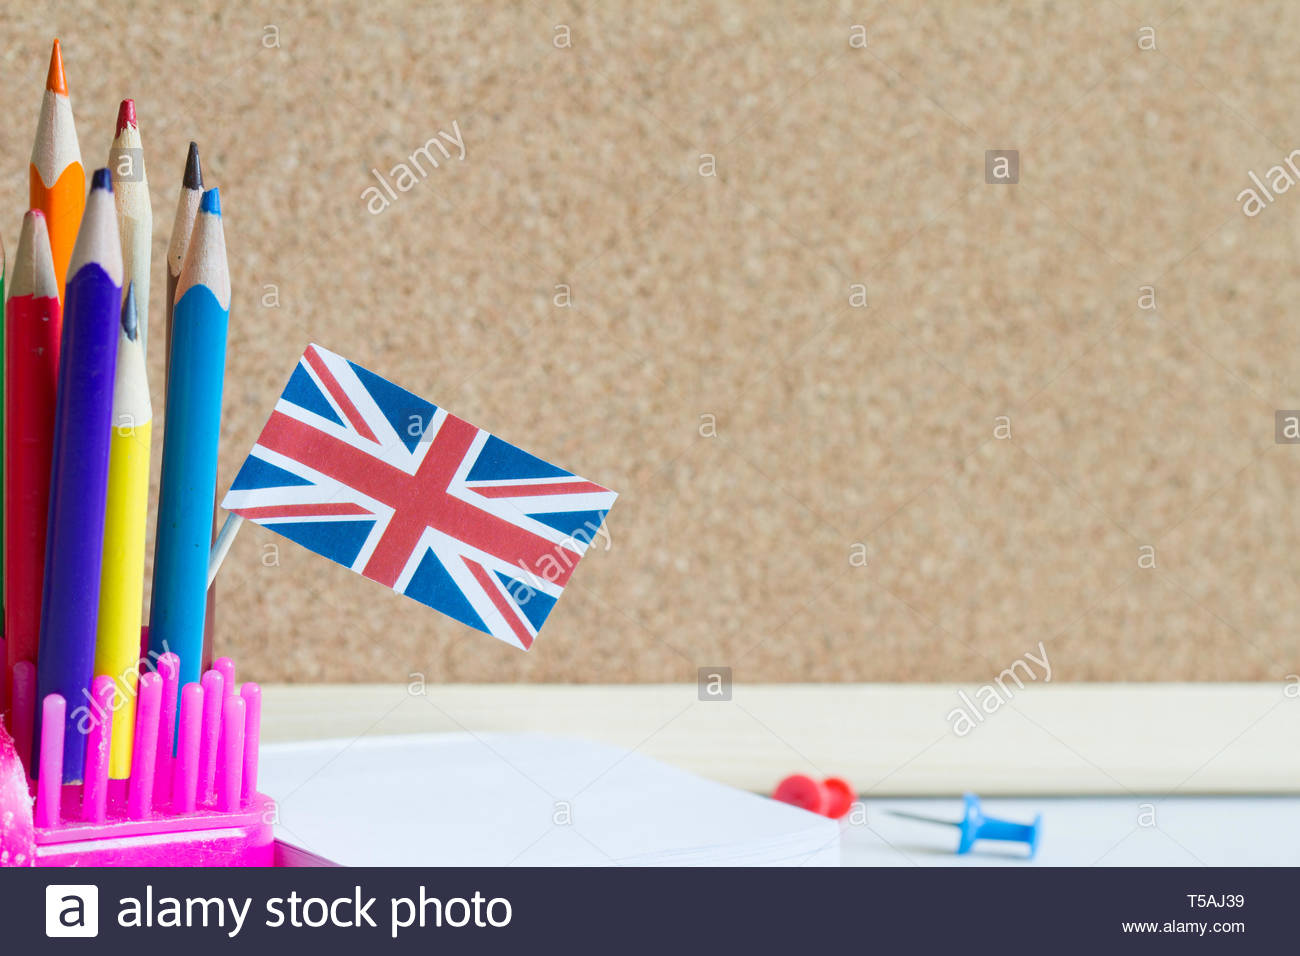 Learning speaking and teaching english with british flag abstract 1300x956